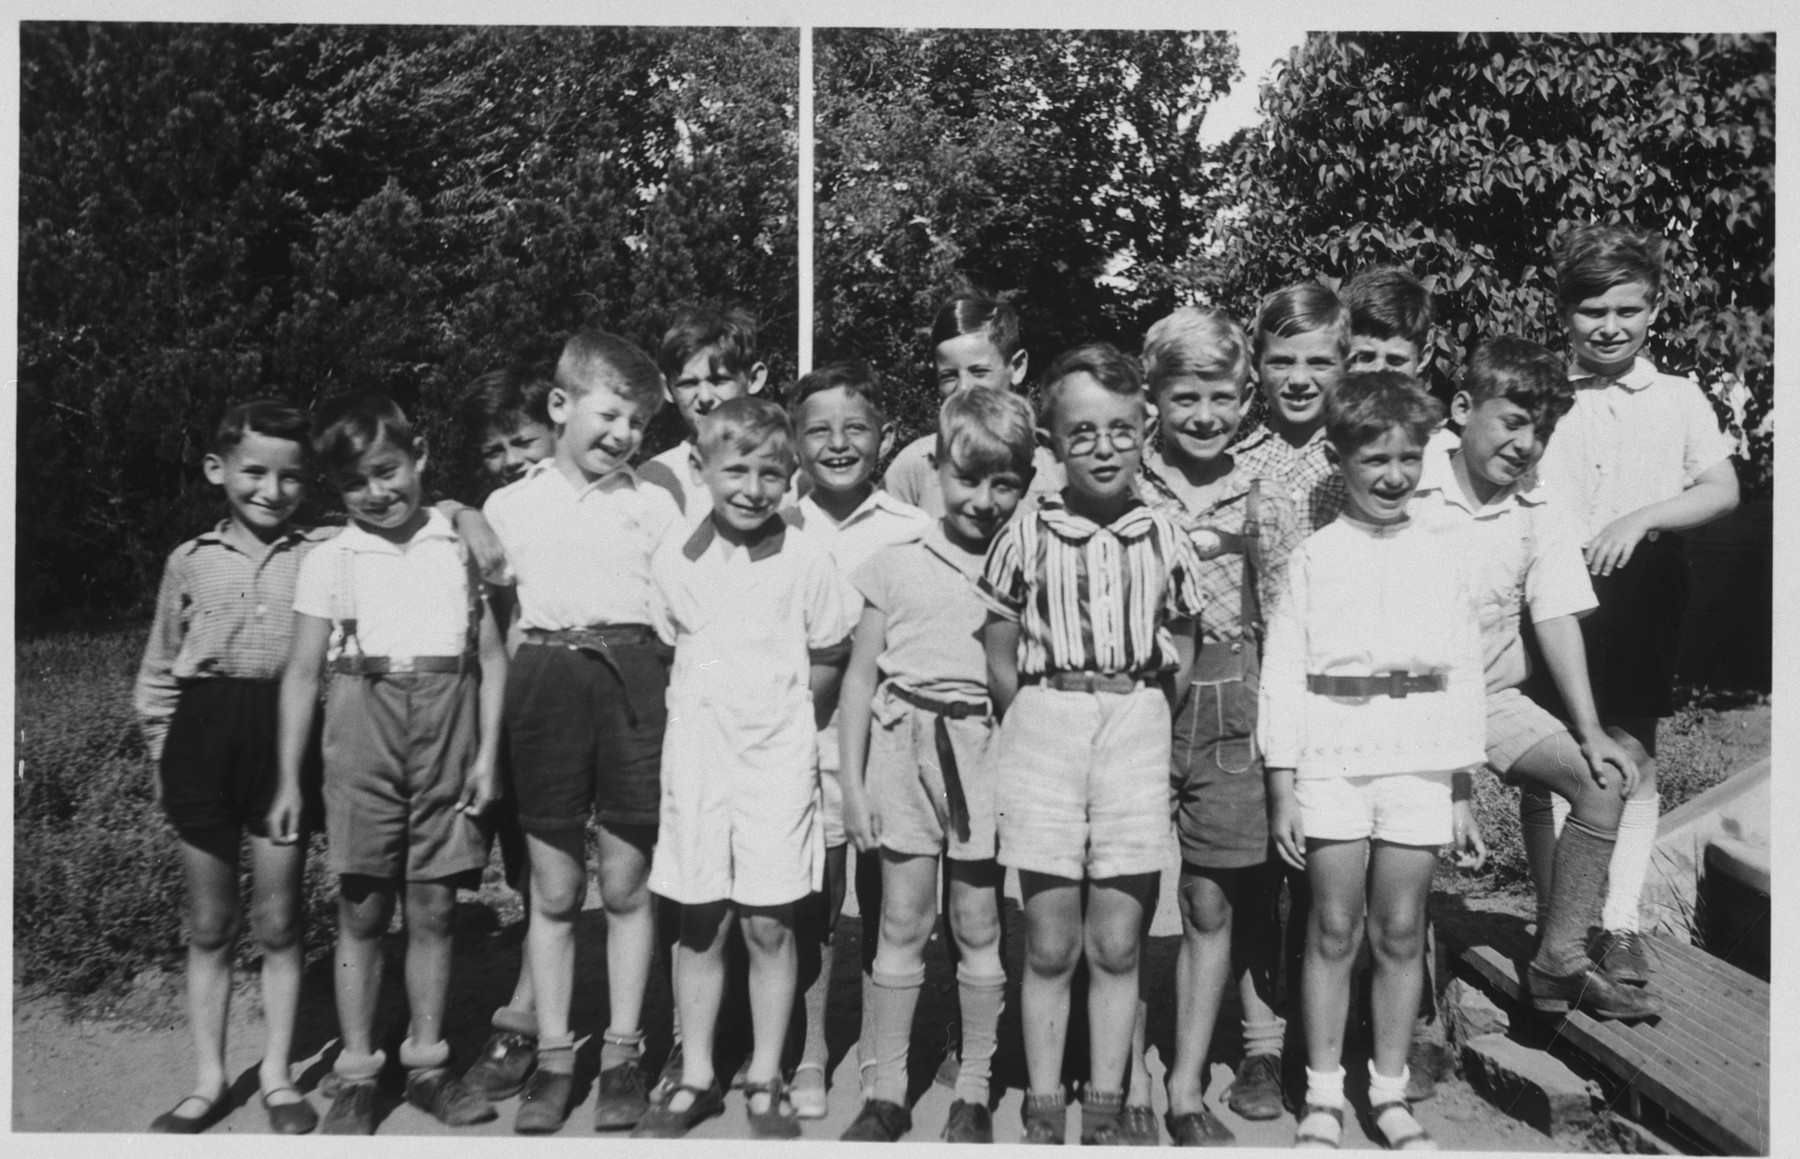 Group portrait of Jewish children from Germany at a Kinderlager [children's recreational summer camp] in Horserod, Denmark.    In 1935-36 Norbert Wollheim was involved in organizing groups of German Jewish youth to attend a summer camp in Denmark.